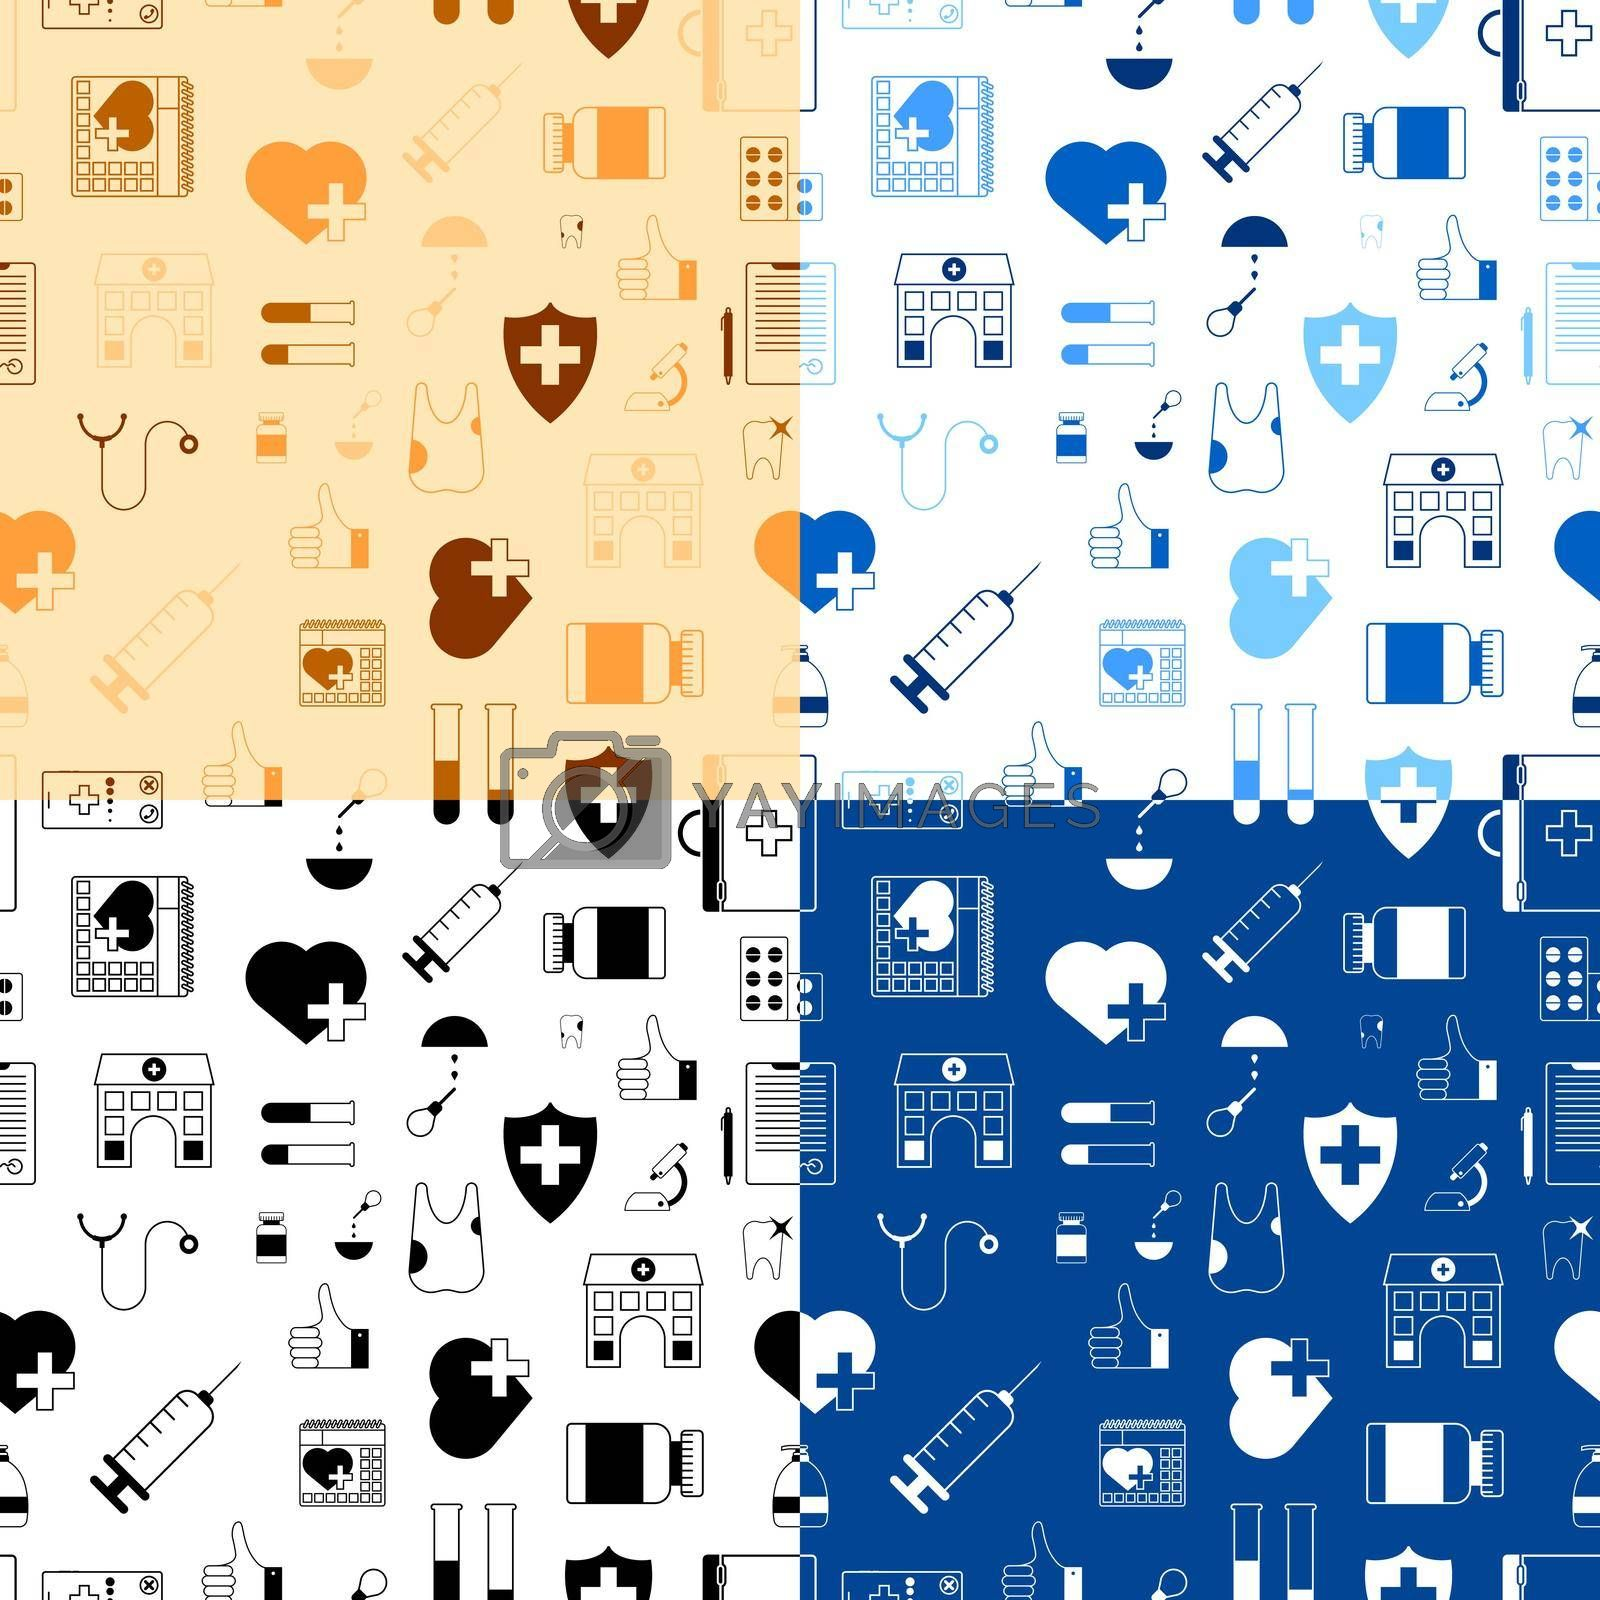 Set of seamless patterns with medical icons. First aid kit, stethoscope, pills, syringe, tooth, microscope, test tubes, hospital, doctor conclusion. Vector